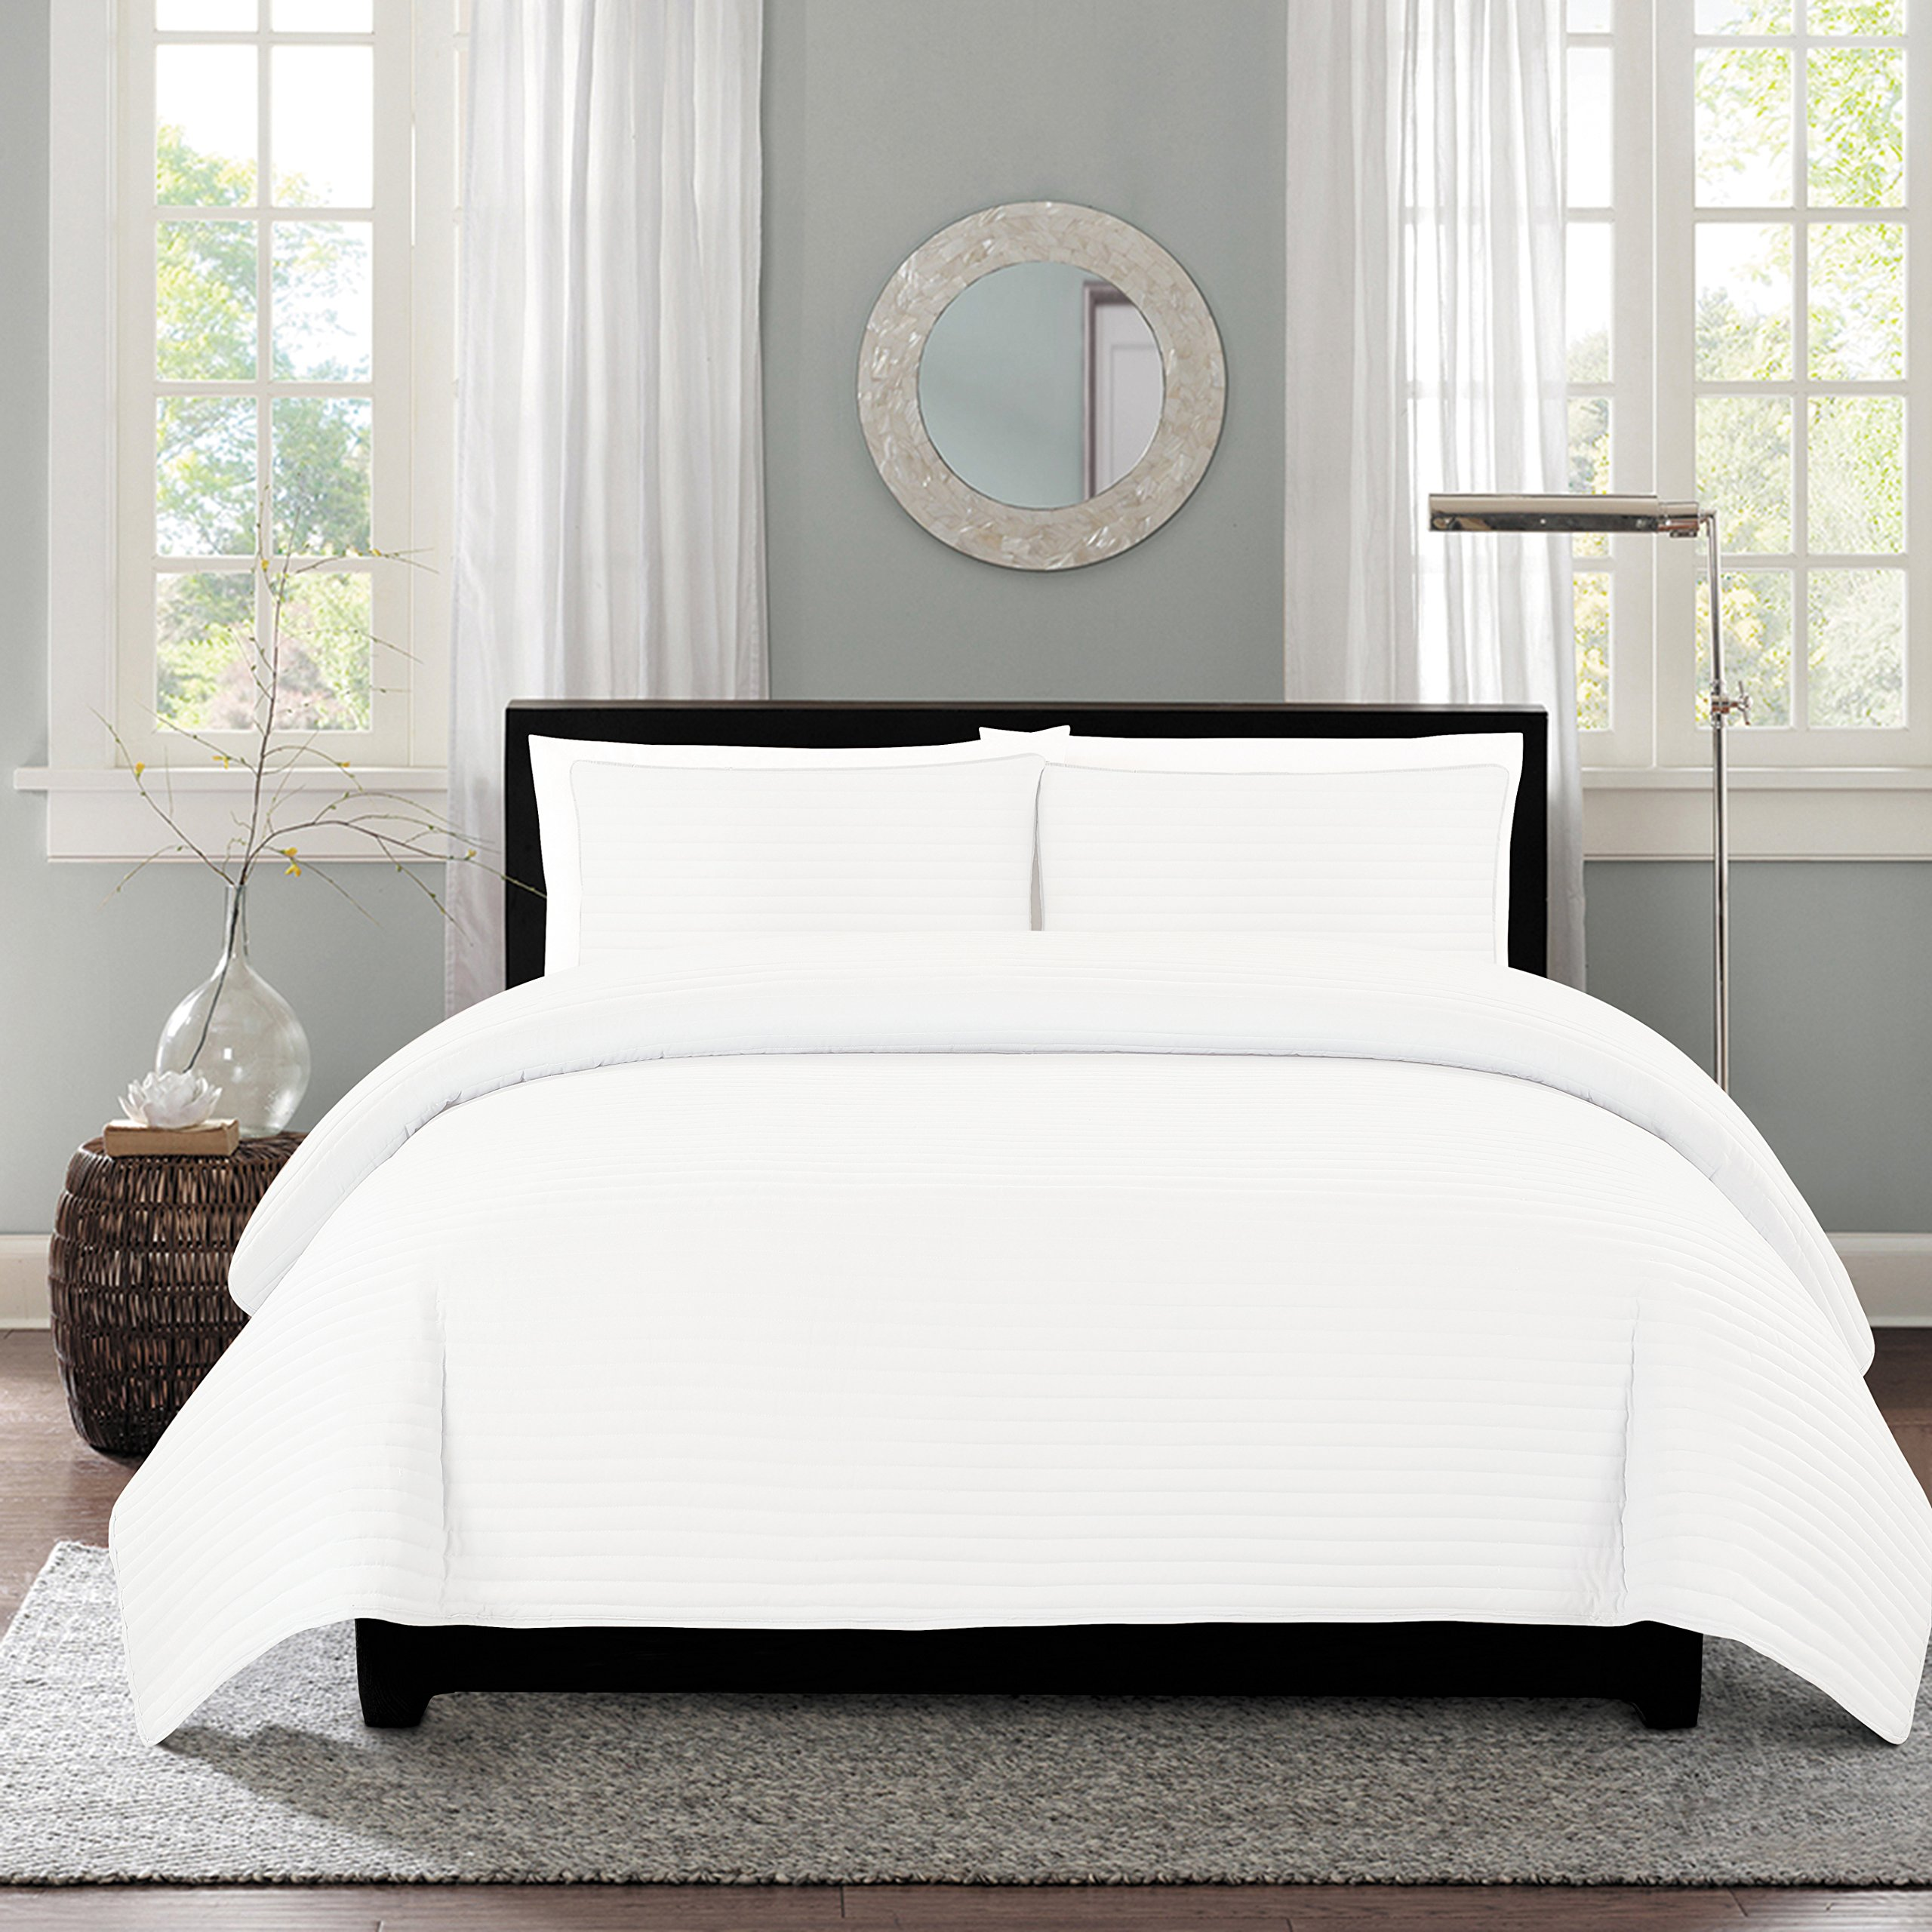 NC Home Fashions One Inch Channel quilt set, King, Bright White by NC Home Fashions Inc. (Image #3)